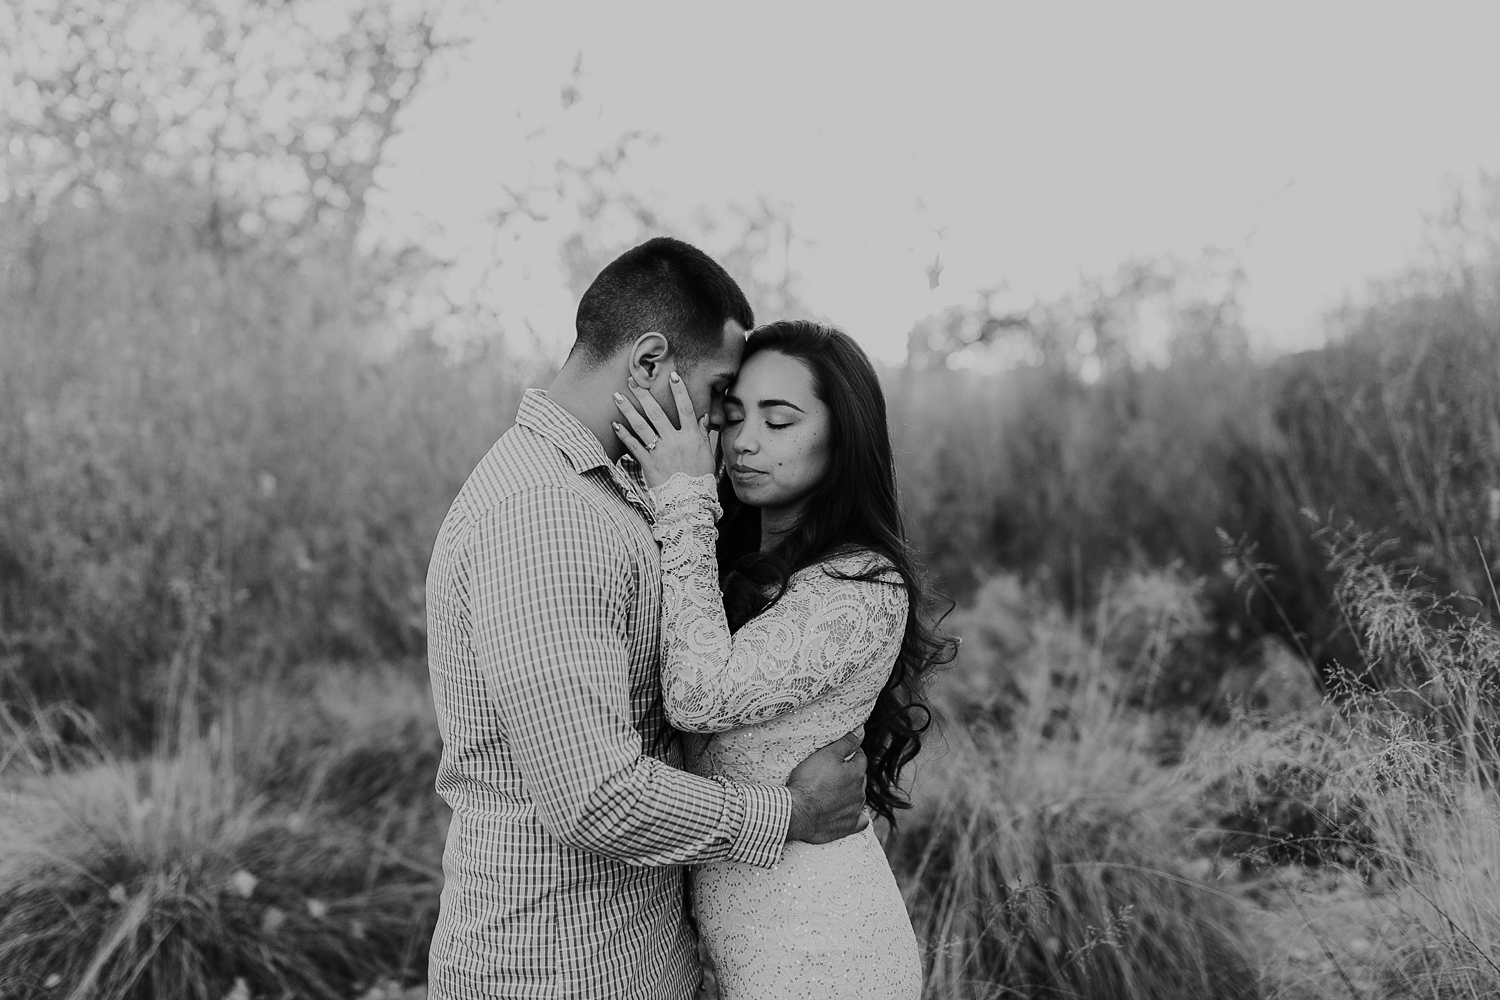 Alicia+lucia+photography+-+albuquerque+wedding+photographer+-+santa+fe+wedding+photography+-+new+mexico+wedding+photographer+-+albuquerque+winter+engagement+session_0001.jpg